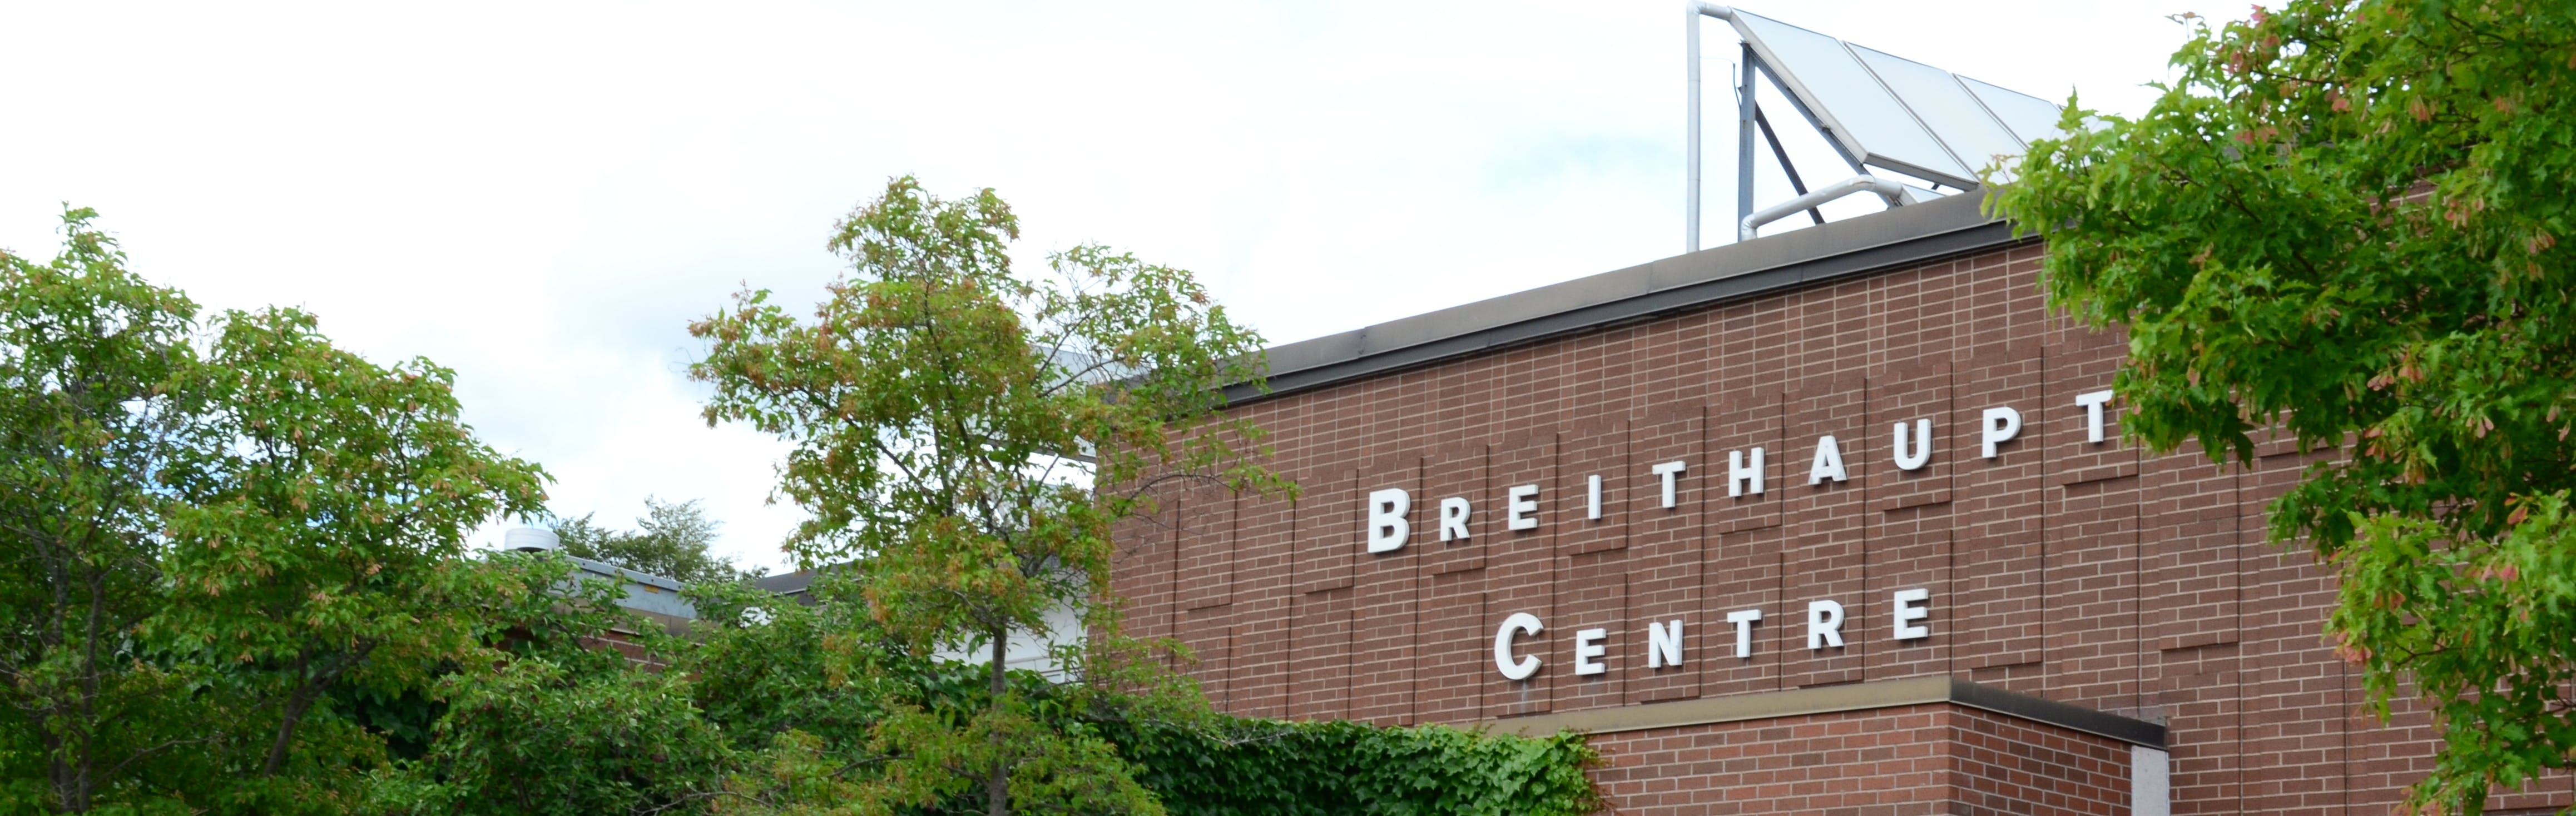 A photo of Breithaupt Community Centre on a summer day.